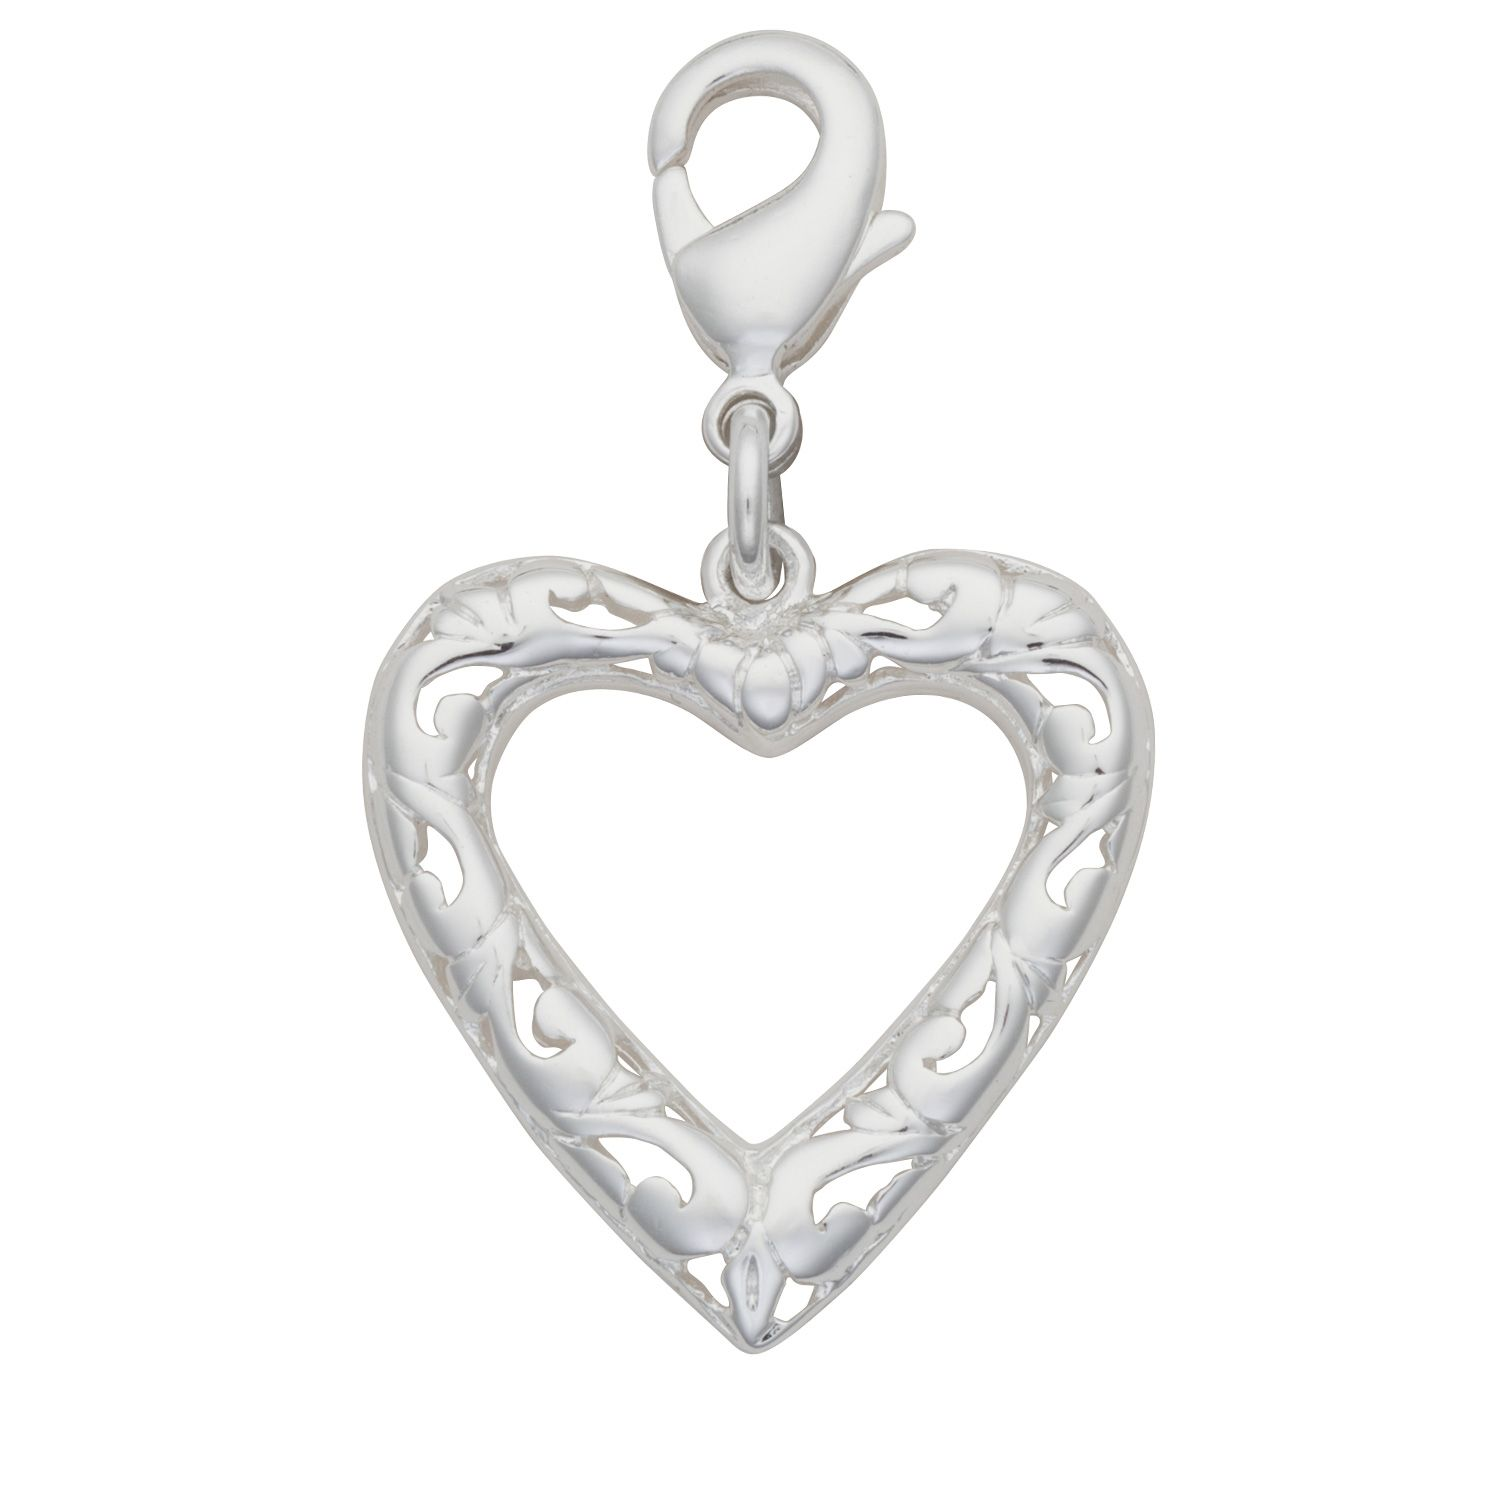 Romance your significant other with this Silver-Plated Open Filigree Heart Charm.